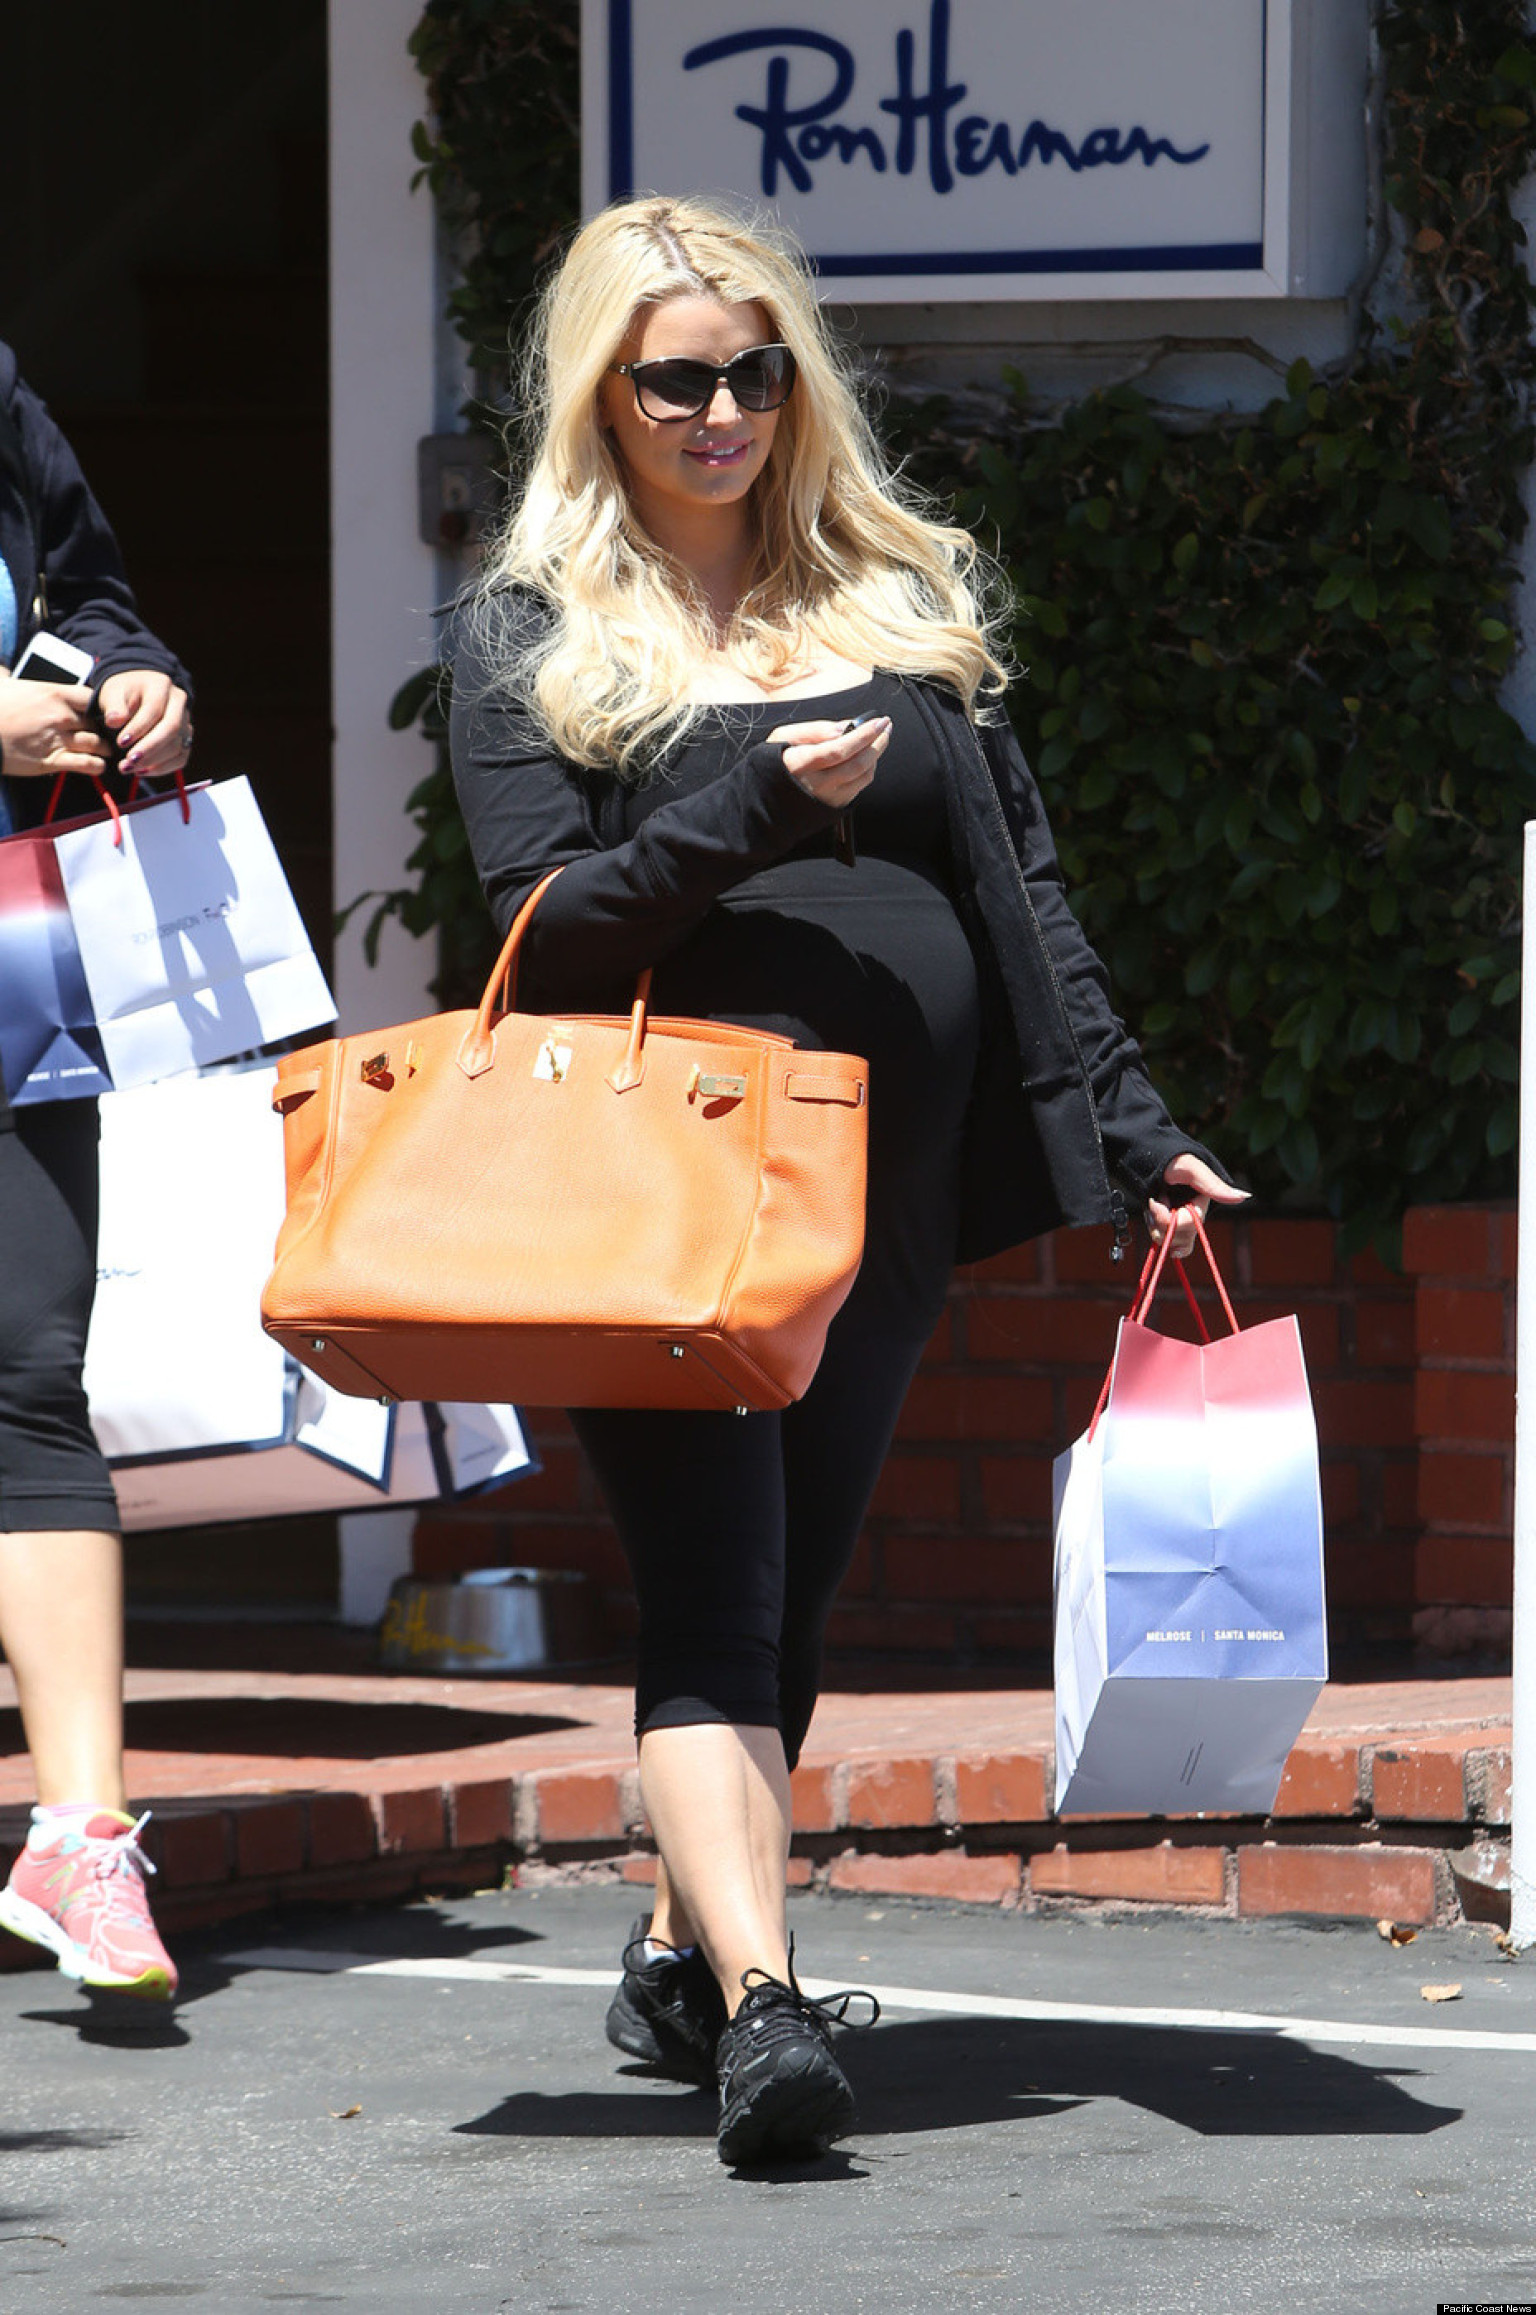 PHOTO: Pregnant Jessica Simpson Goes Shopping